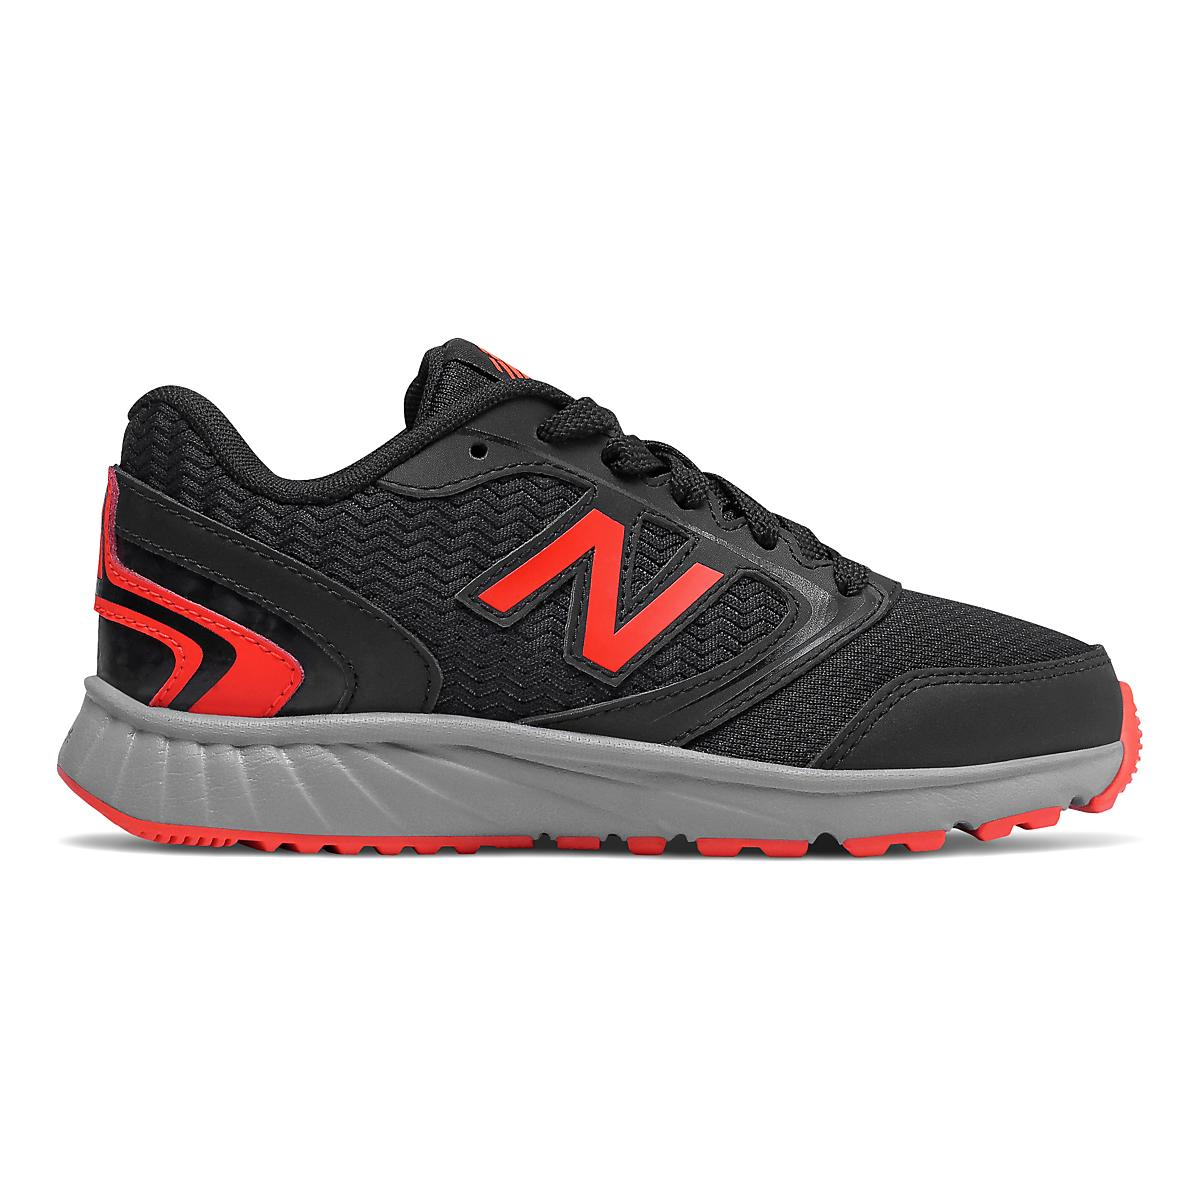 New Age Hiking Shoes